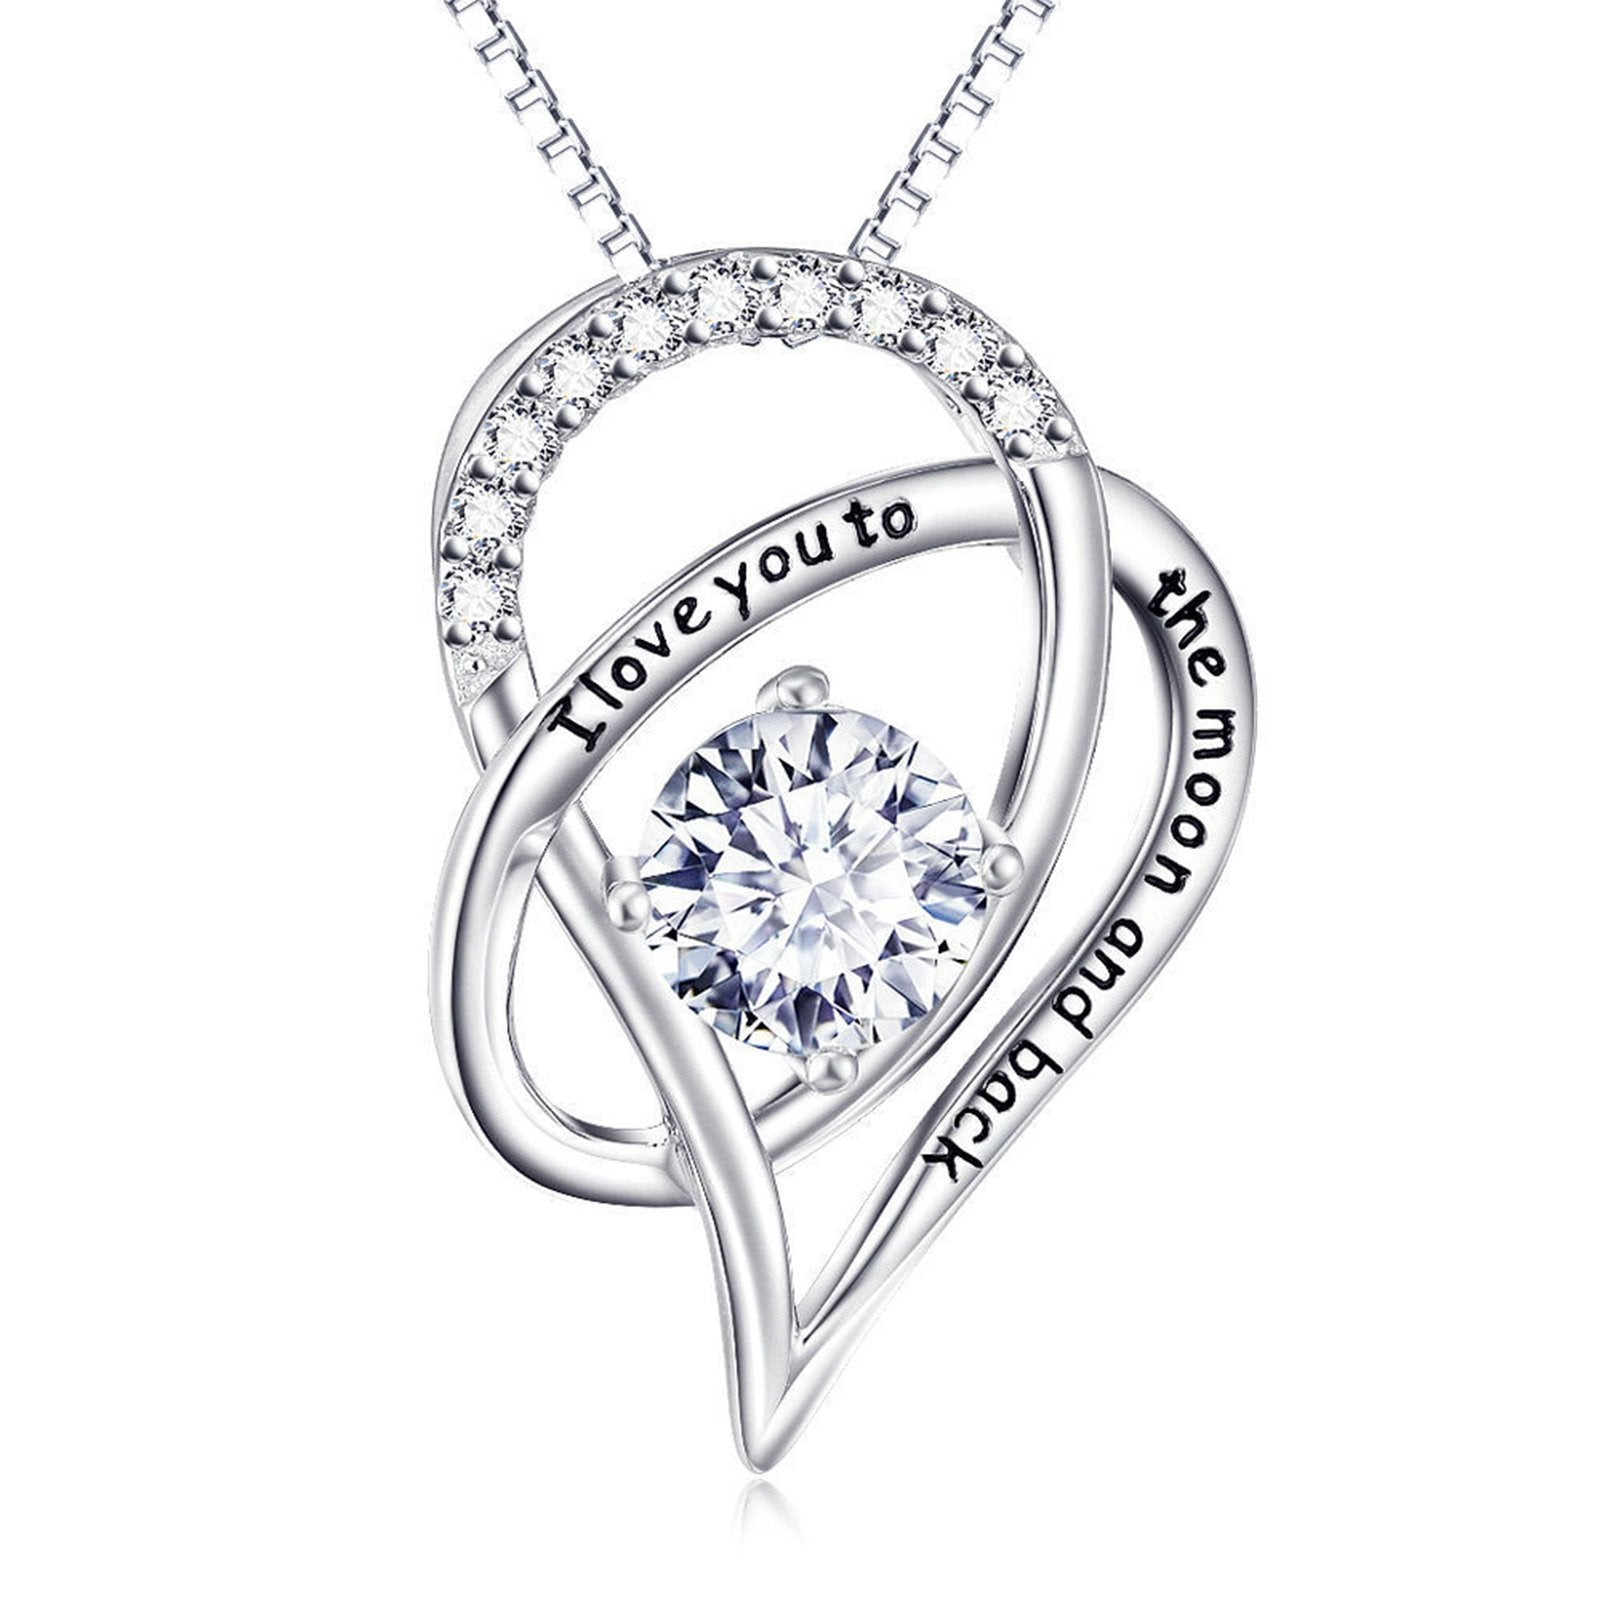 I Love You Necklace in Silver - Voiceopin International: Child Abuse Information & Online Shopping Center